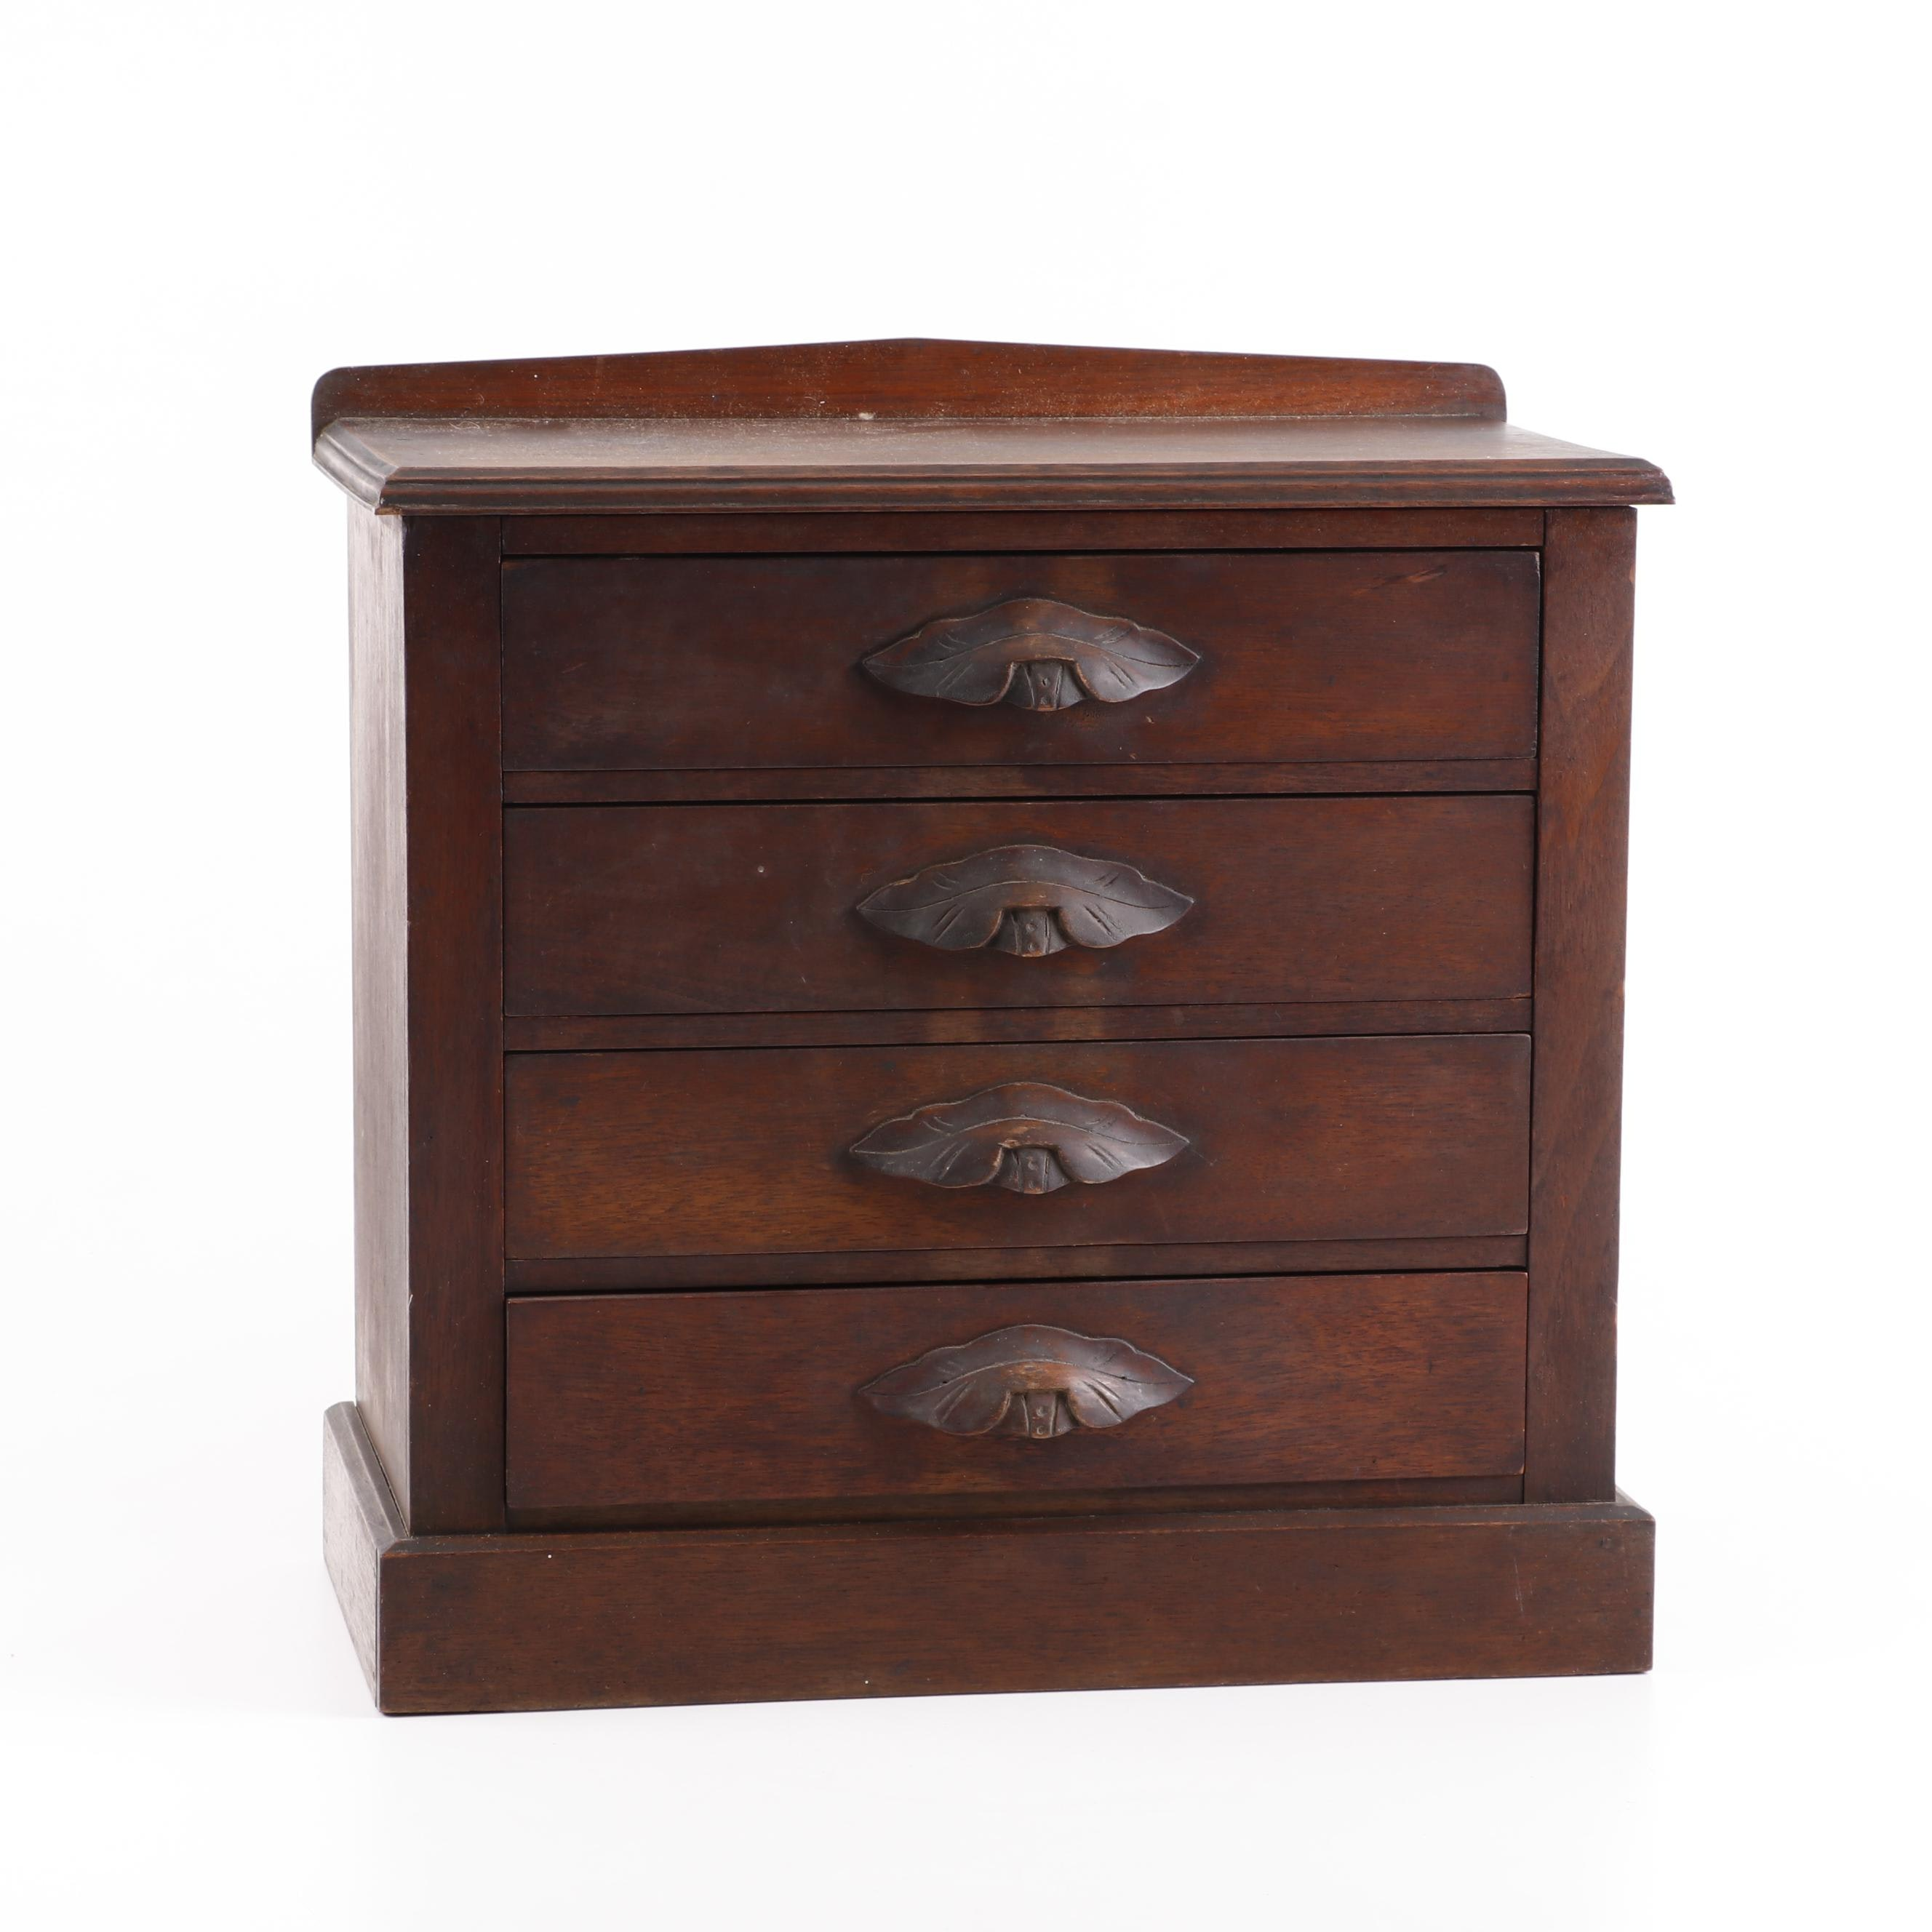 Oak Table Top Chest of Drawers, Mid 19th Century